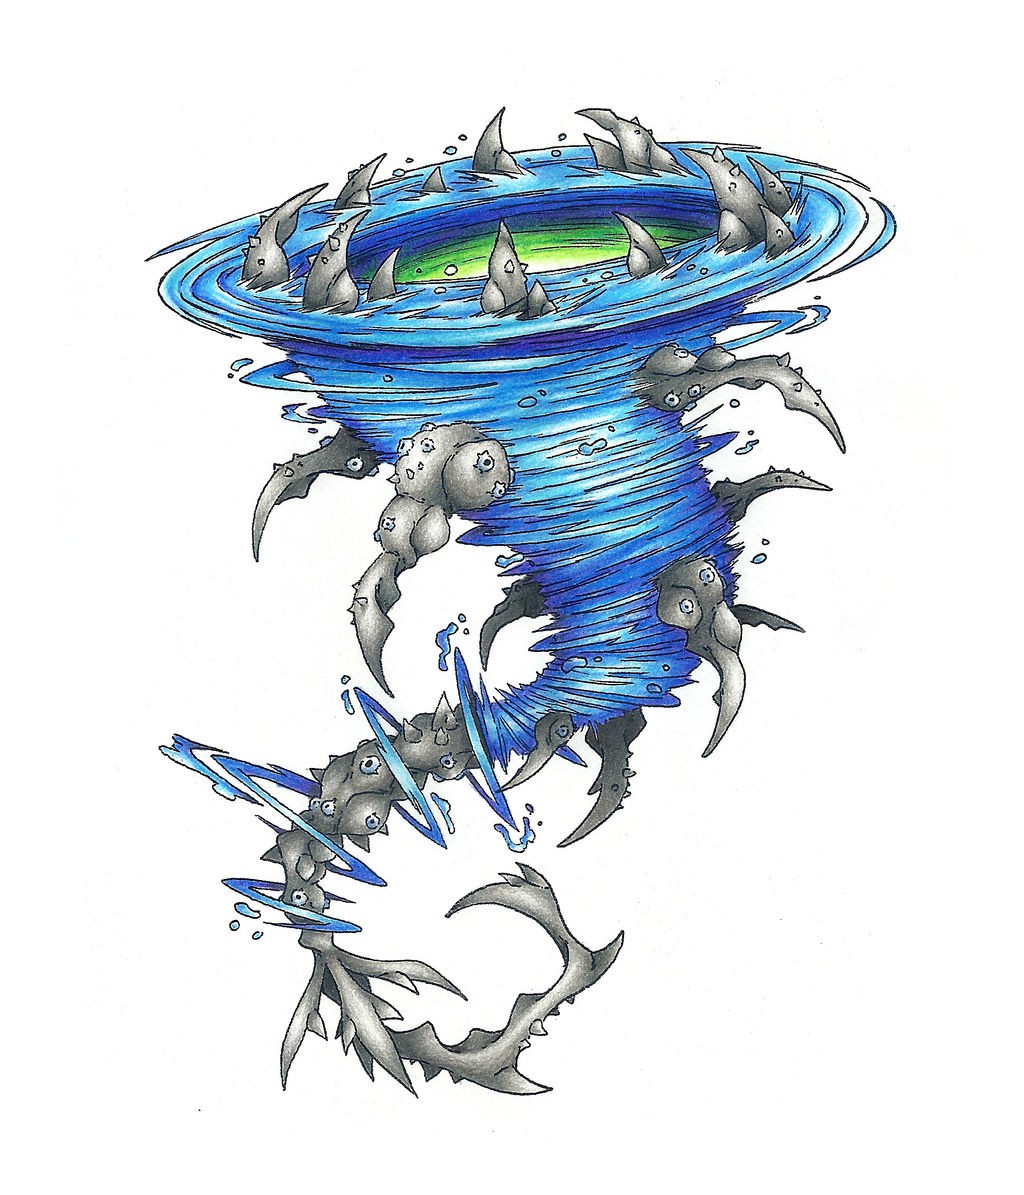 Charybdis Raging Whirlpool By Atmaflare On Deviantart